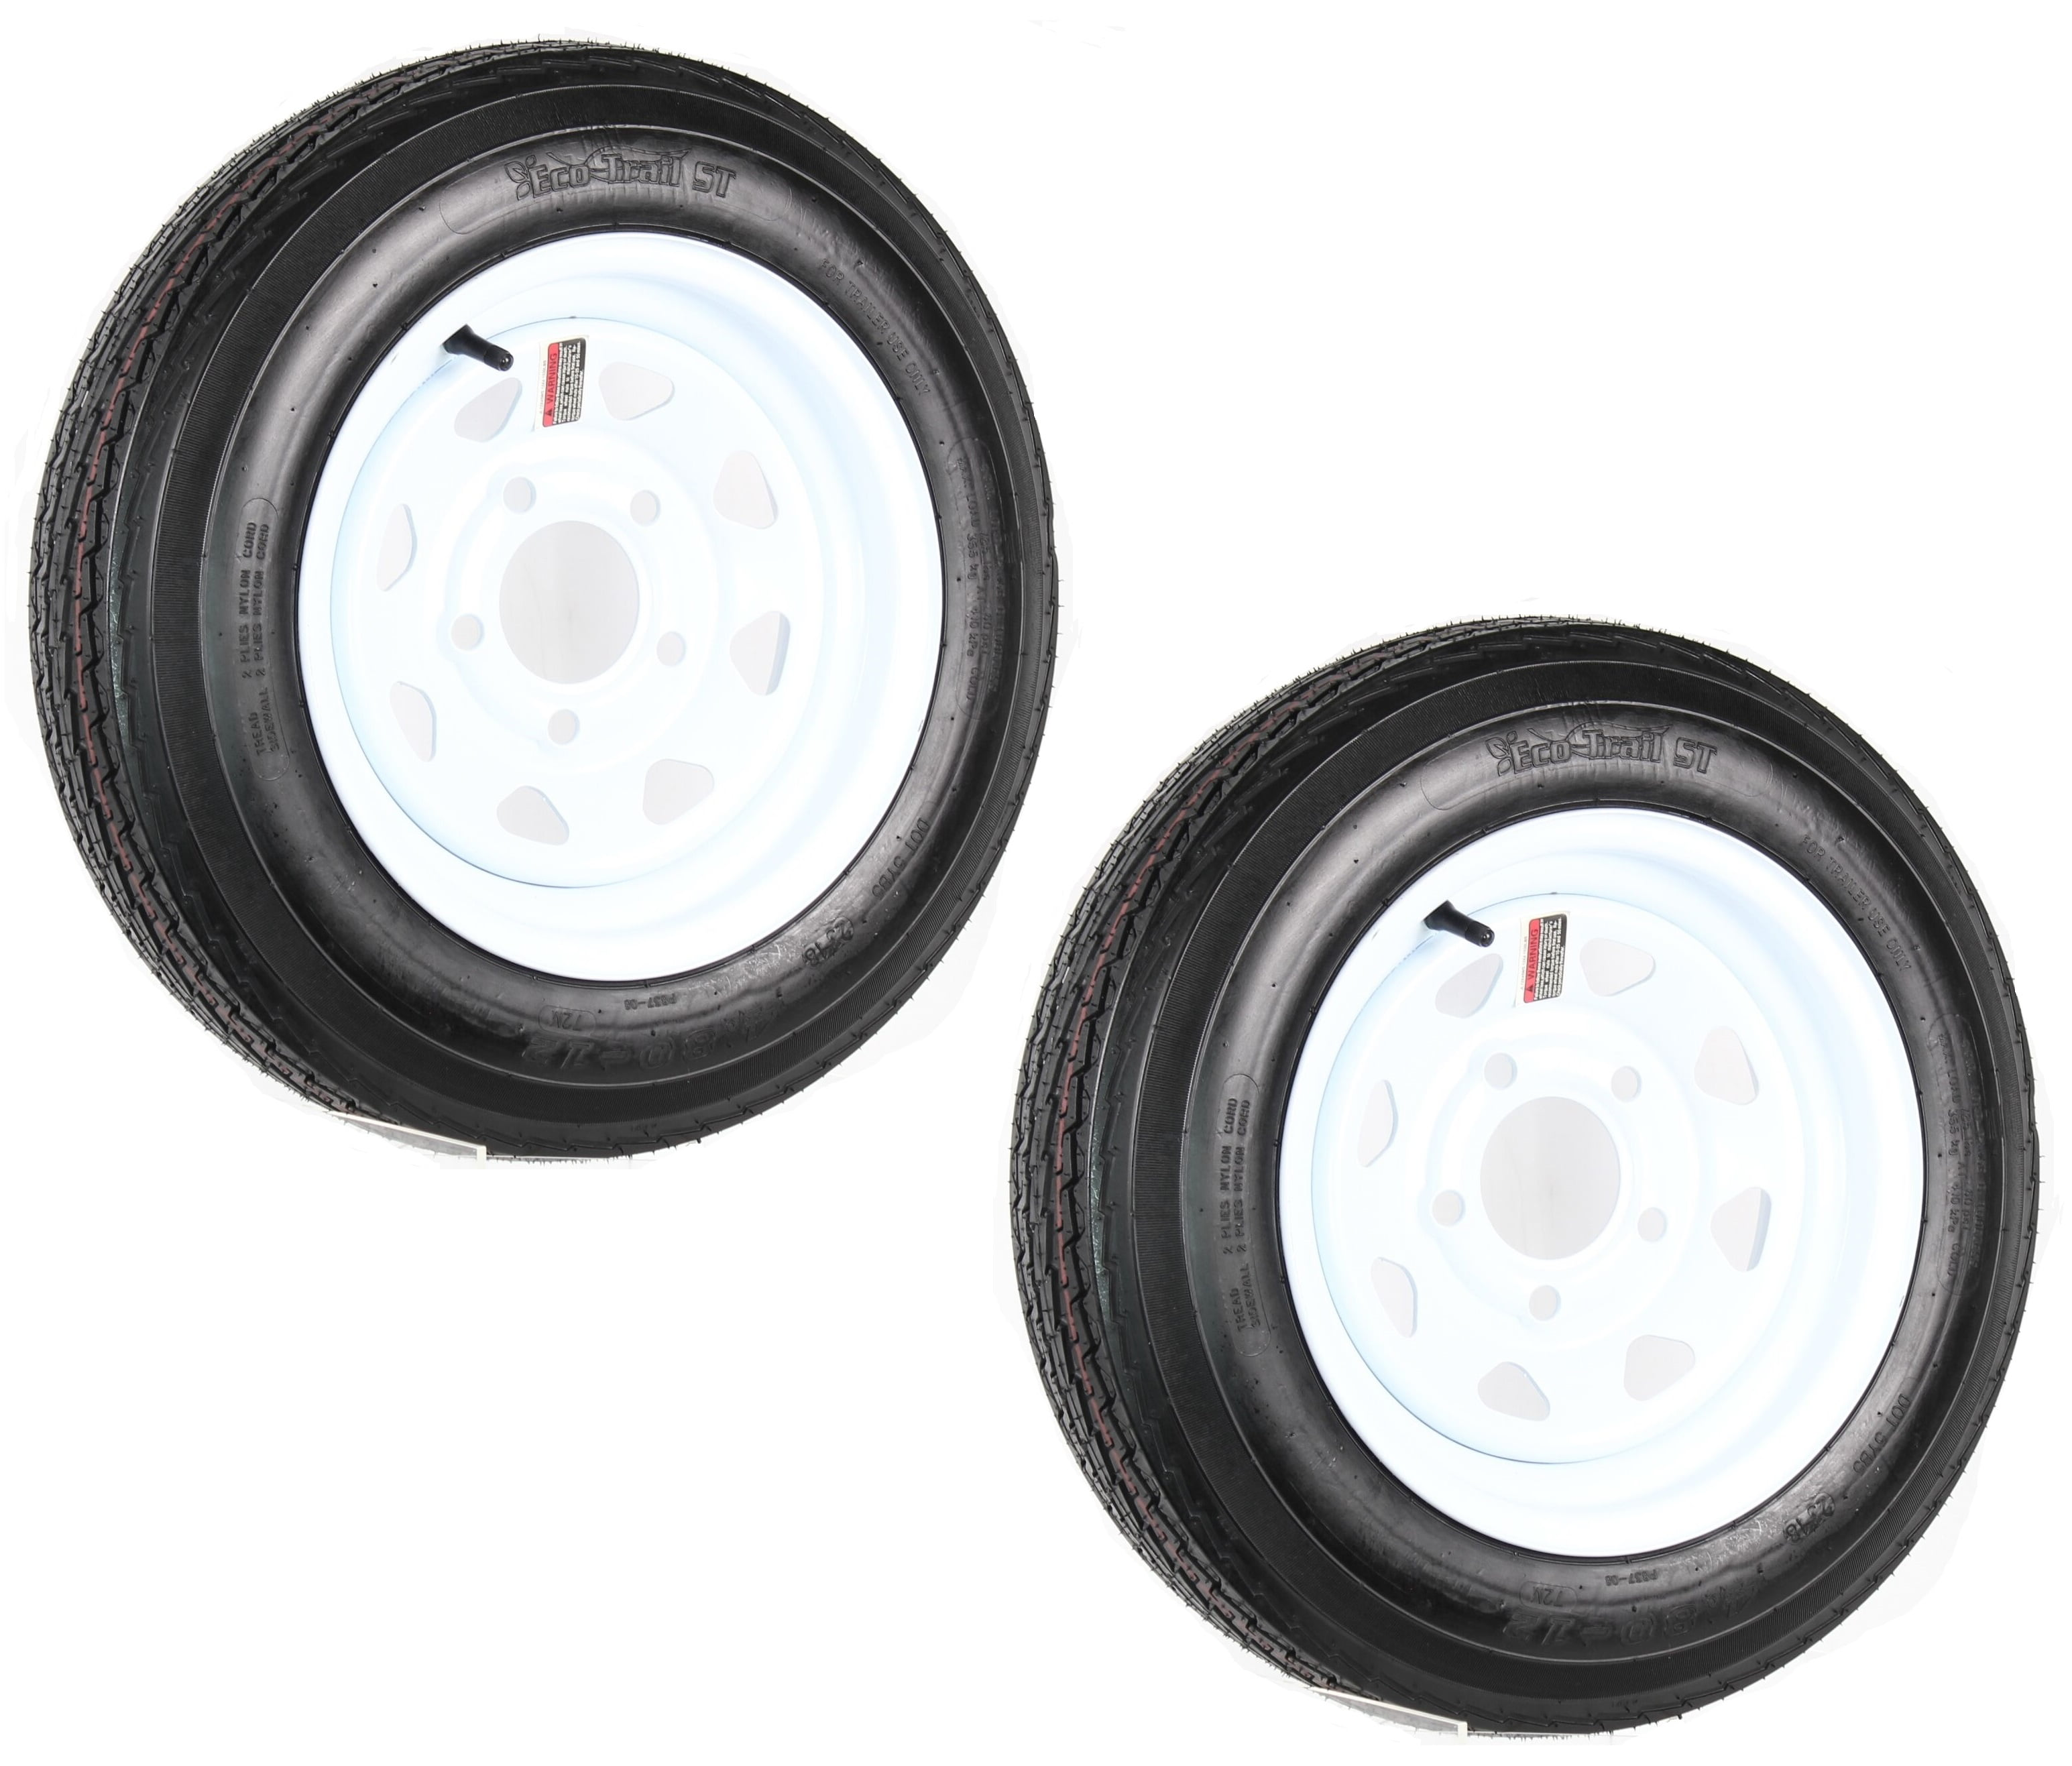 5.30-12 5.30x12 530-12 5.30-12 Boat Camper pop-up utility Trailer Tire 6ply